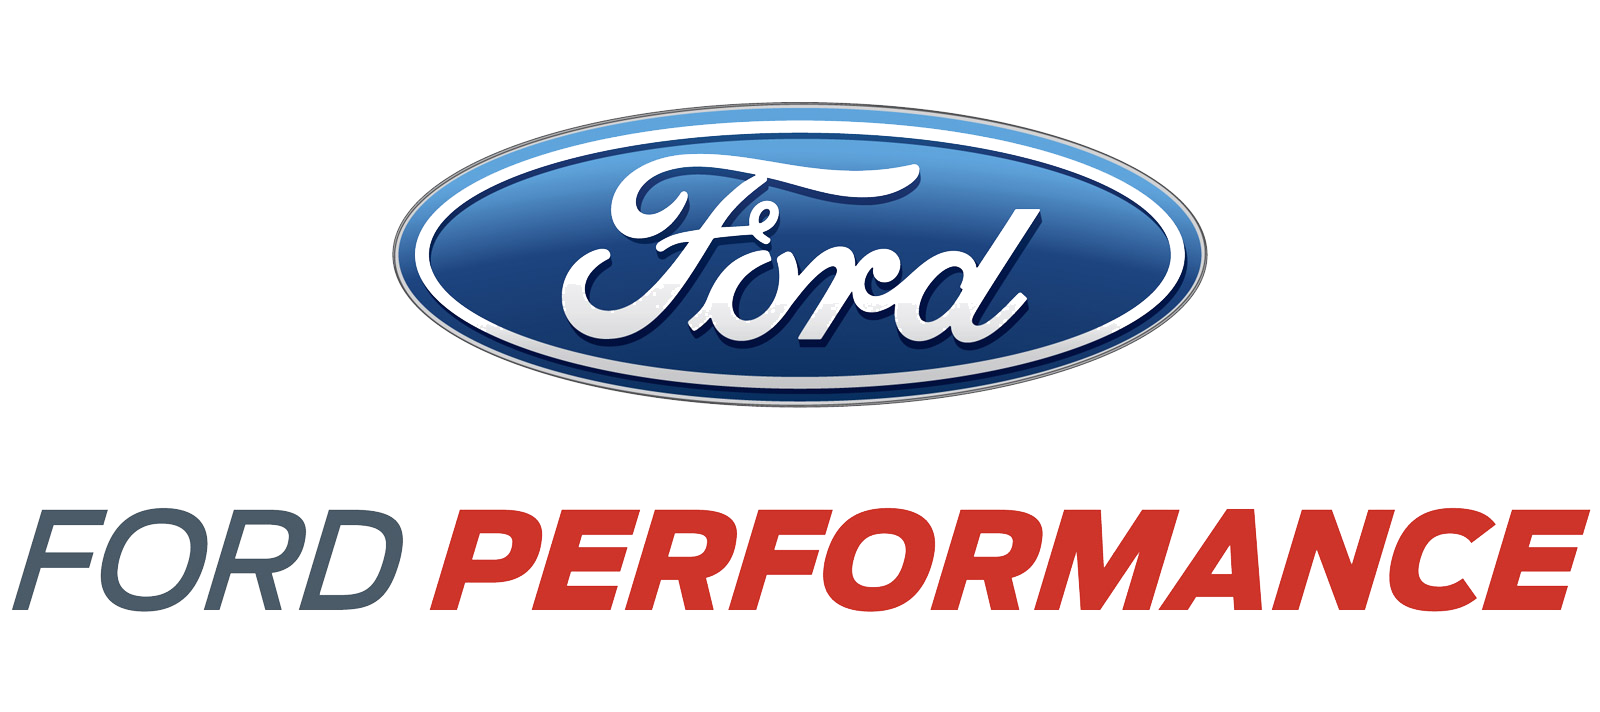 ford-performance-logo_100494230_h